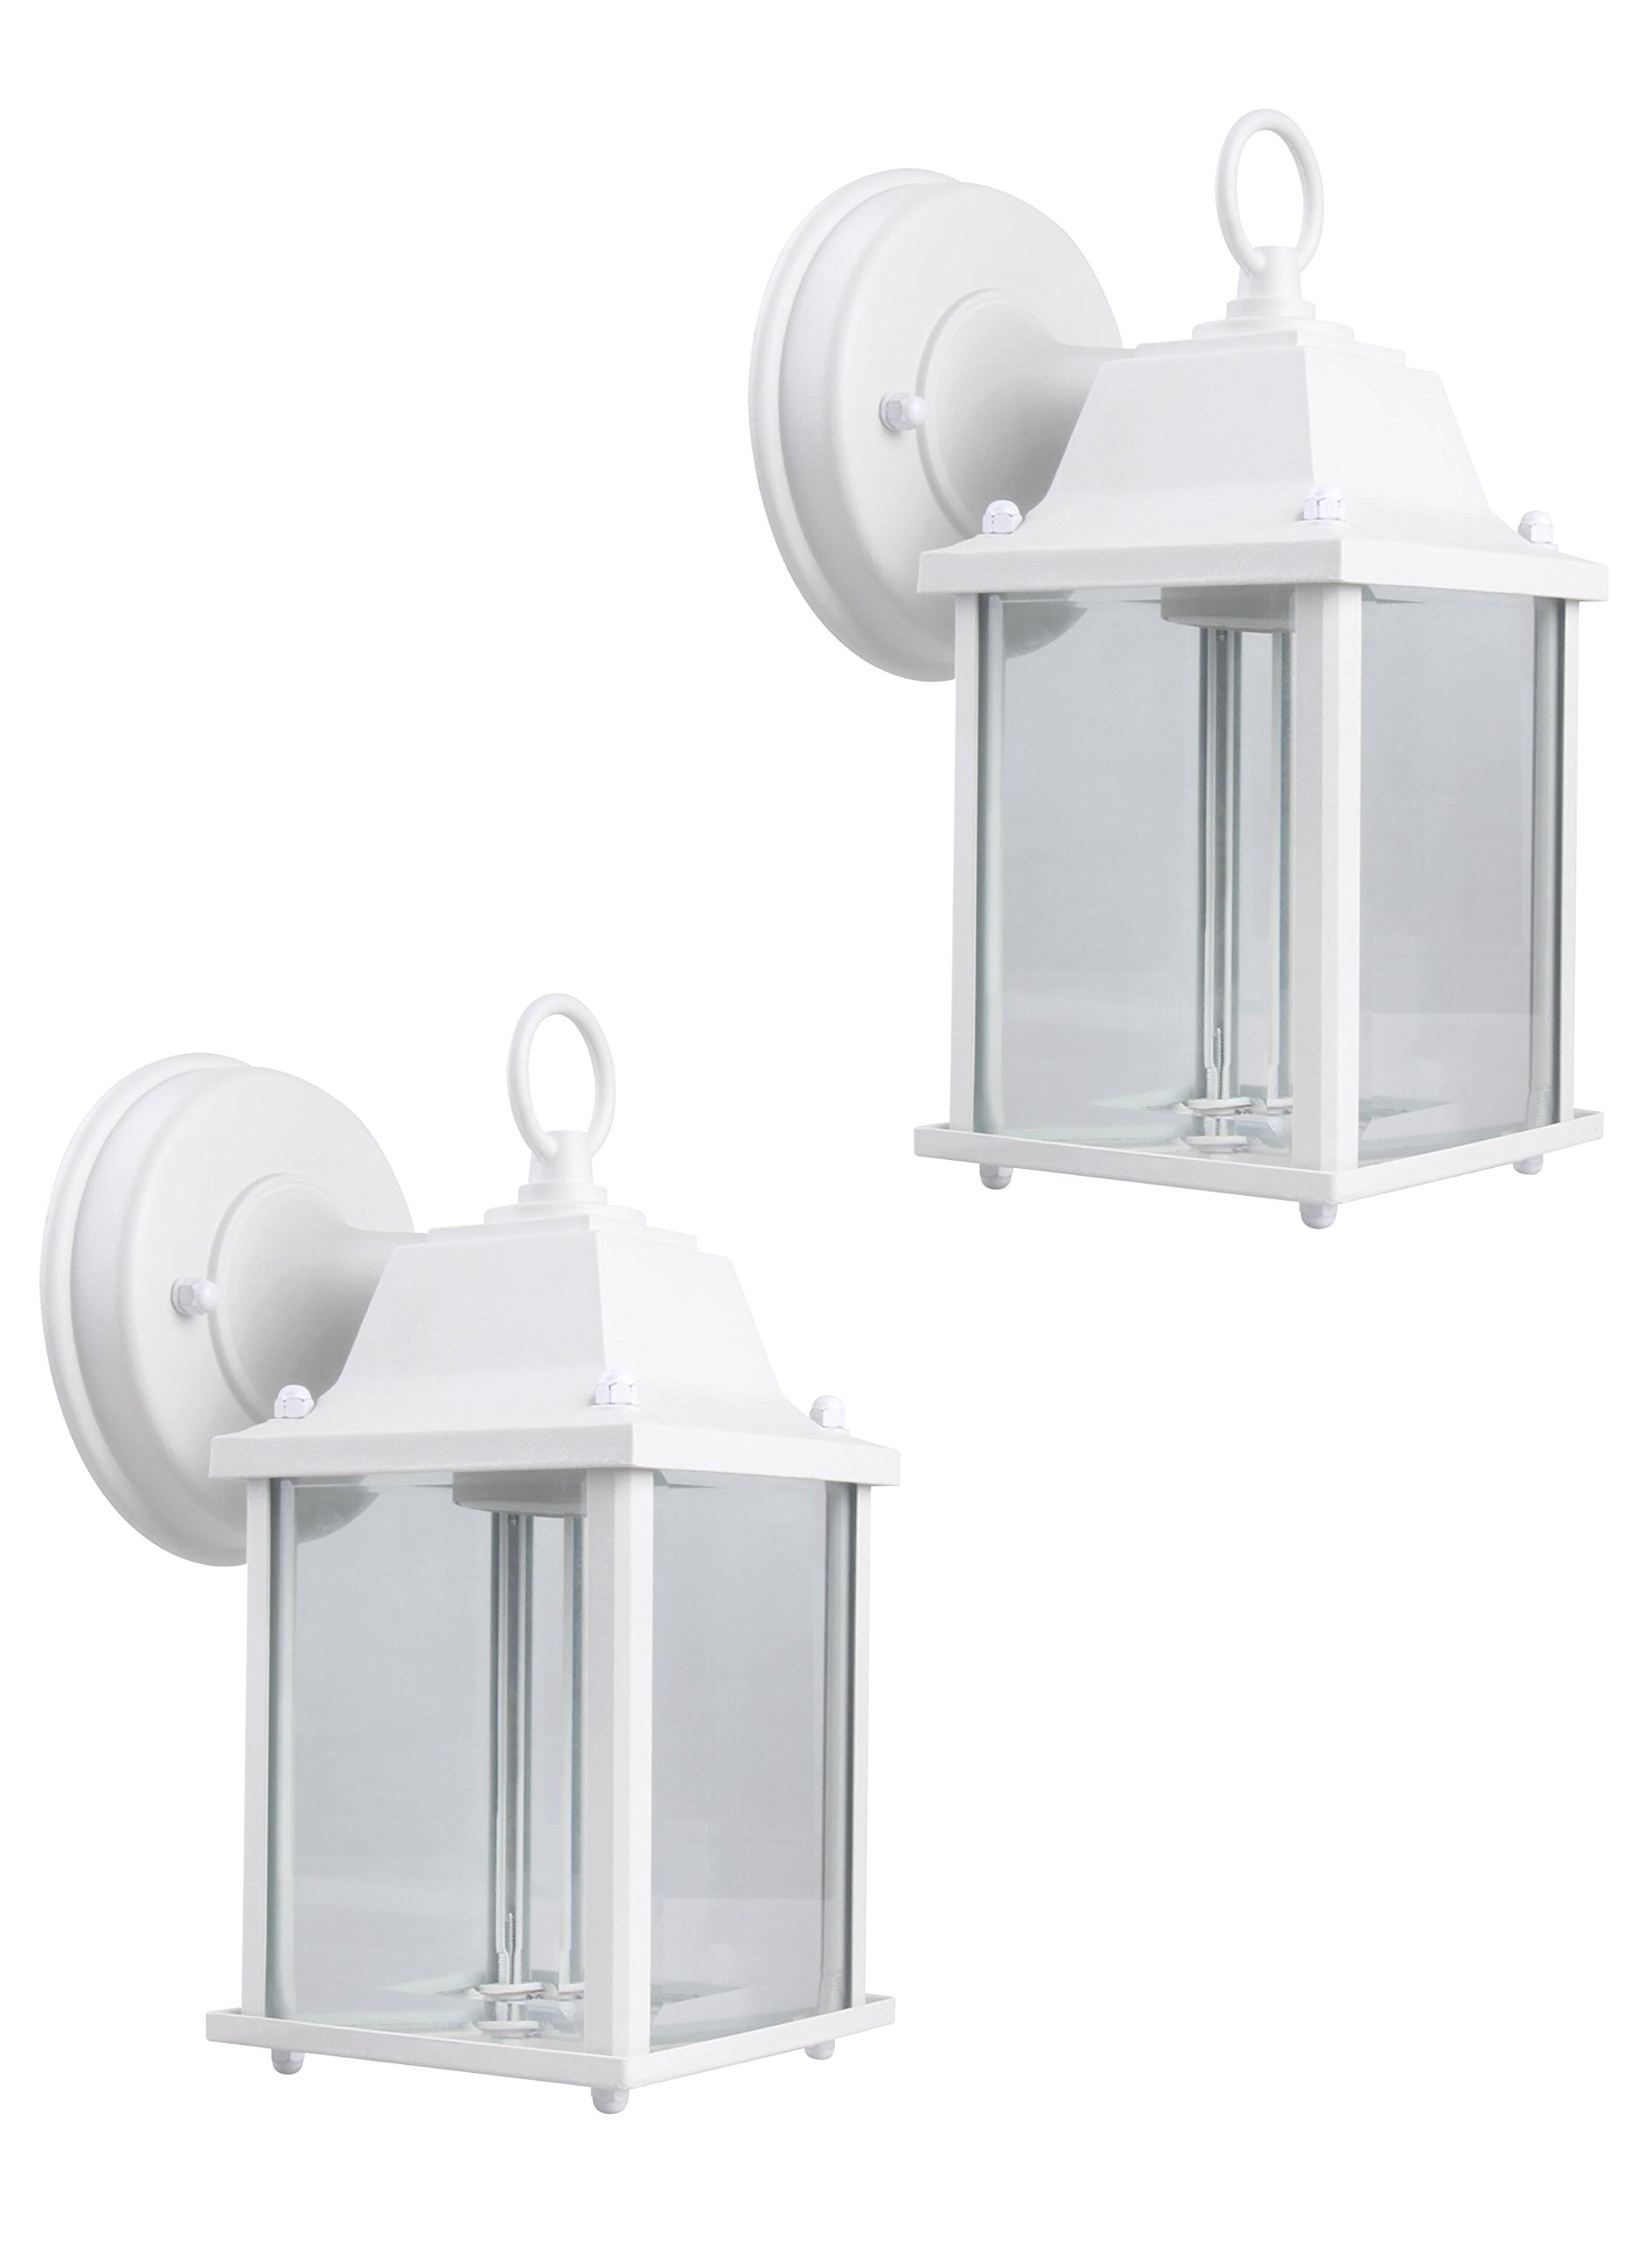 CORAMDEO Outdoor Wall Lantern, Wall Sconce as Porch Light Fixture with One E26 Base, Outdoor Rated, White Powder Coat Finish, Aluminum Housing Plus Glass, 2-Pack